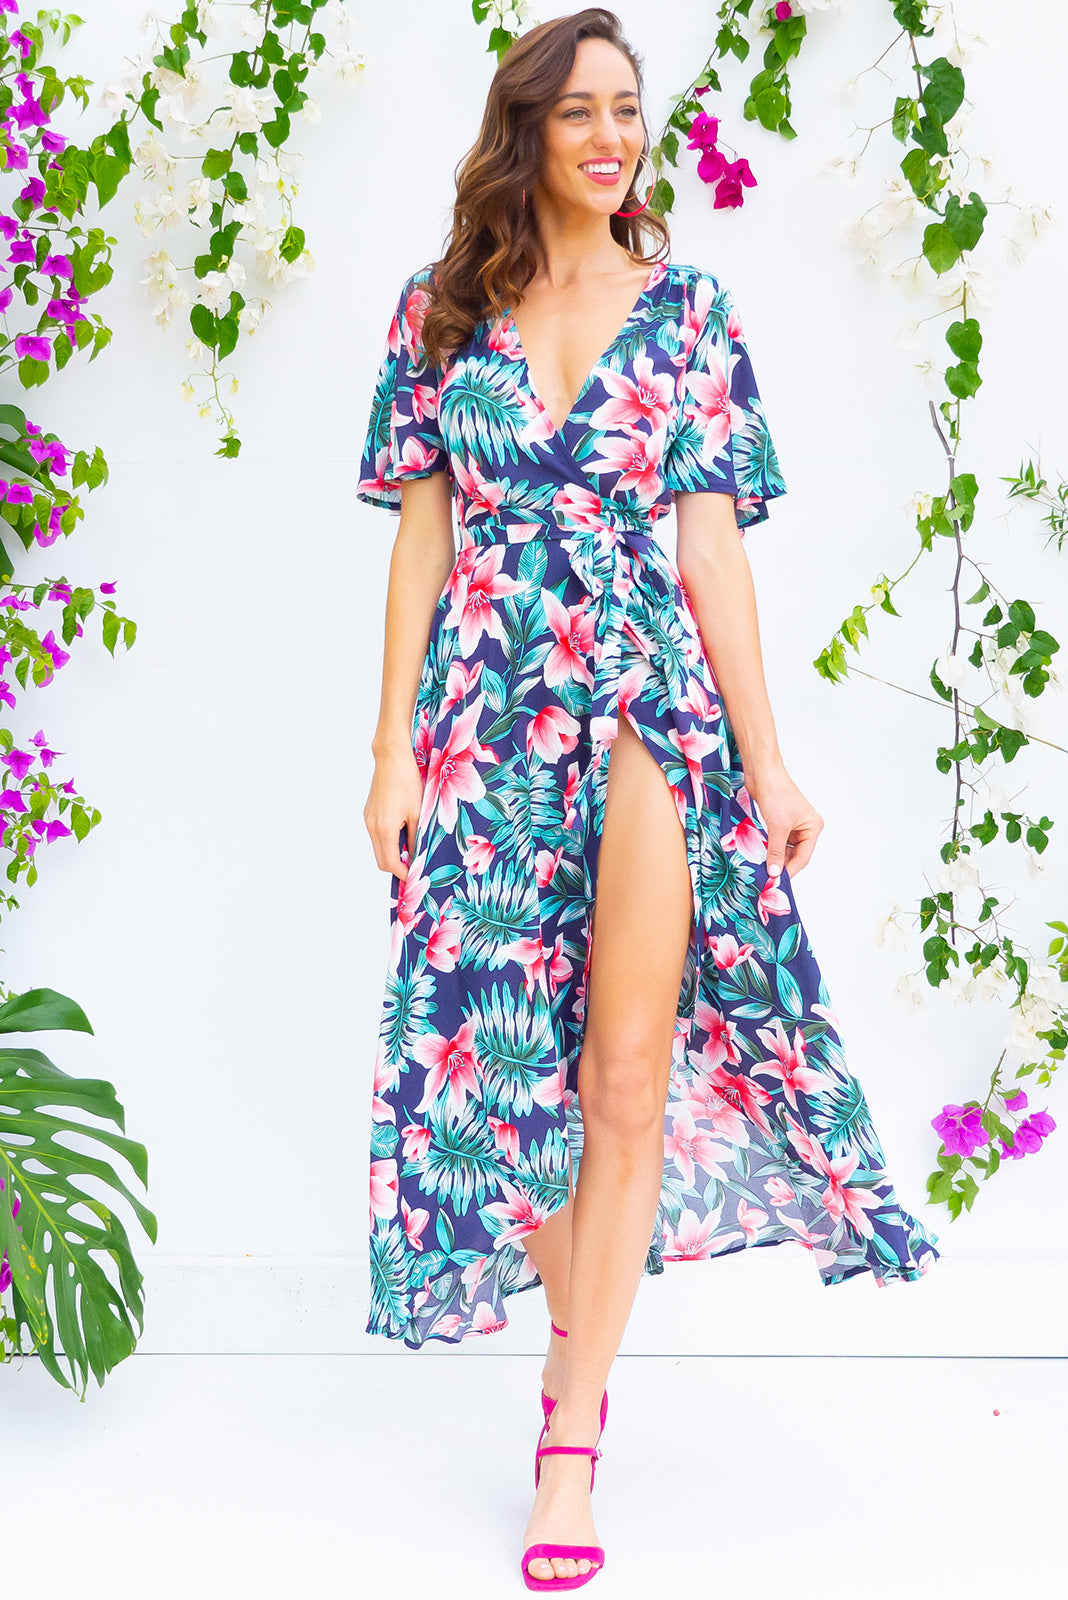 Petal Tiger Lilly Maxi Wrap dress with flutter sleeves in a vibrant blue based tropical inspired floral print on 100% woven rayon